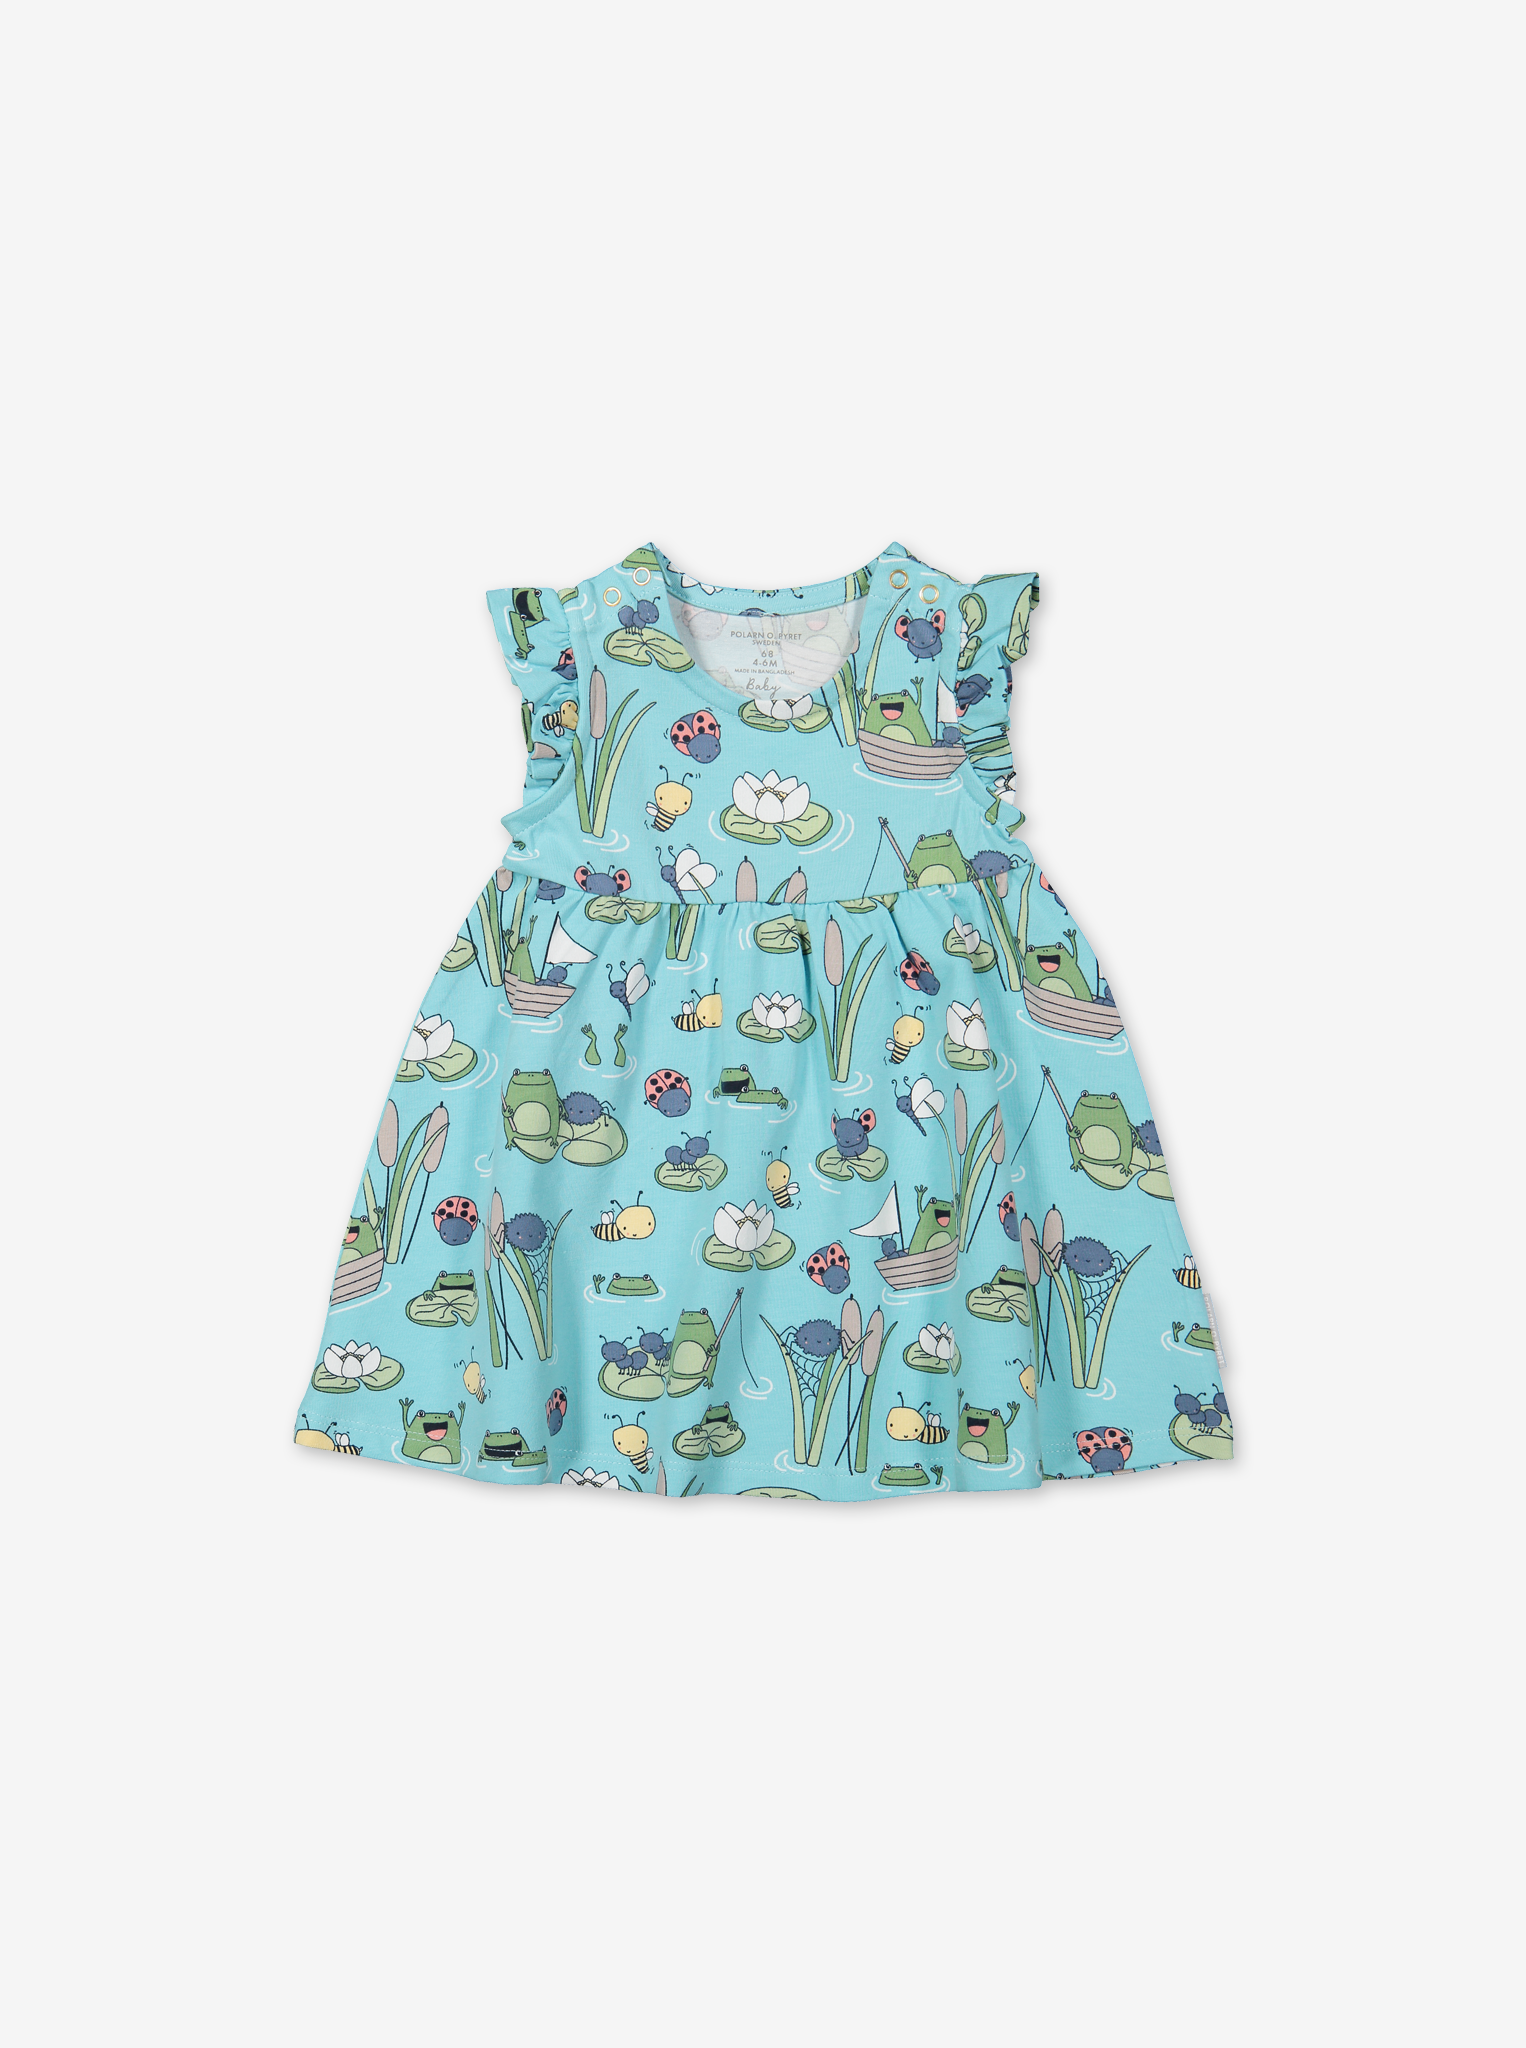 Pond Print Baby Dress & Shorts Set-Girl-0-1y-Turquoise